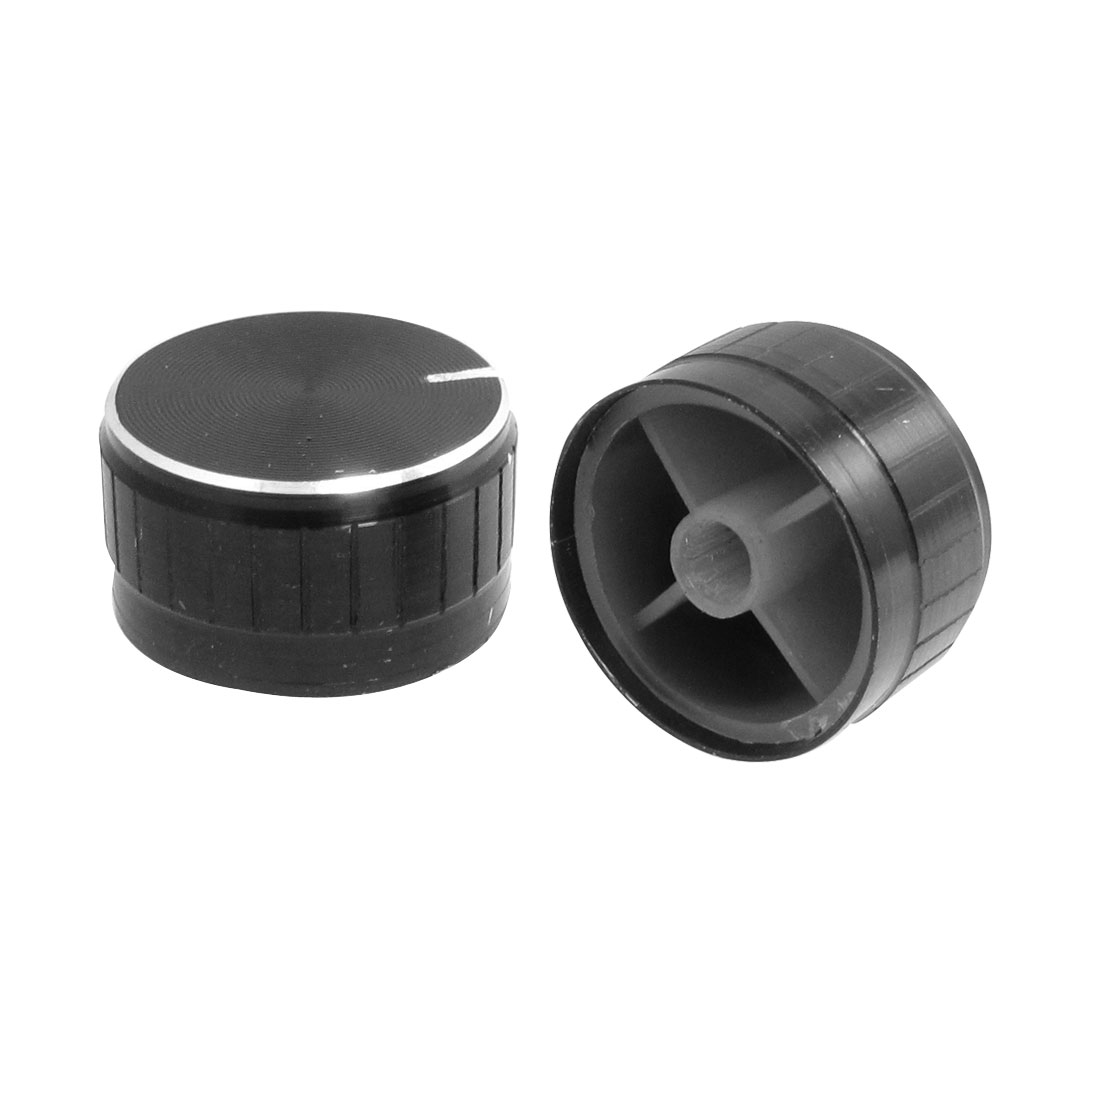 "2 Pcs 1.18"" x 0.67"" Potentiometer Control Volume Knob Cap Black"